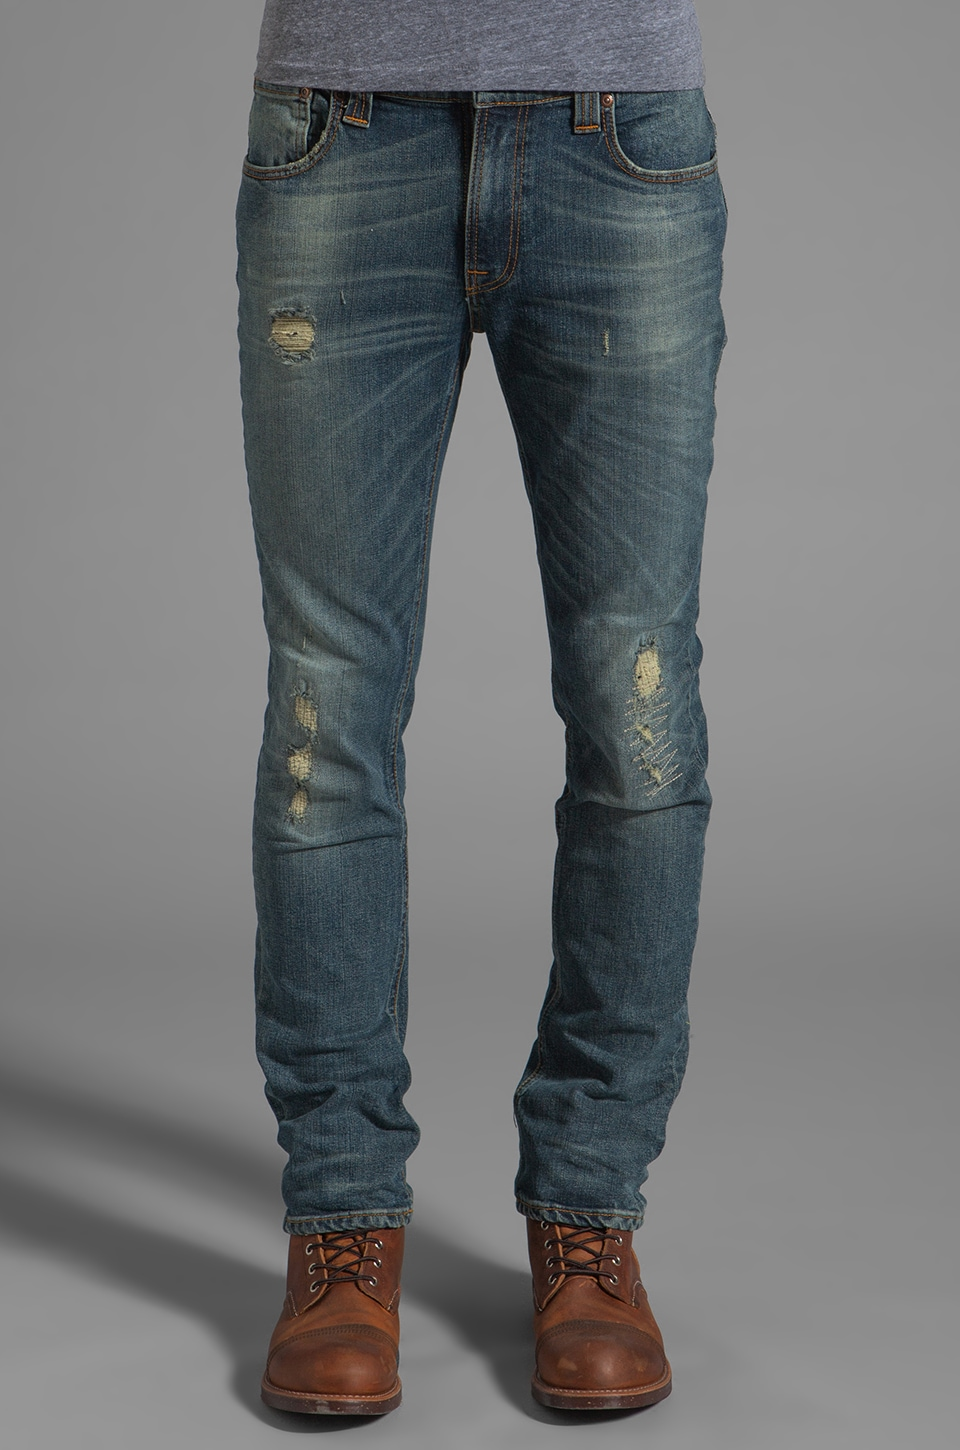 Nudie Jeans Thin Finn in Organic Allen Replica